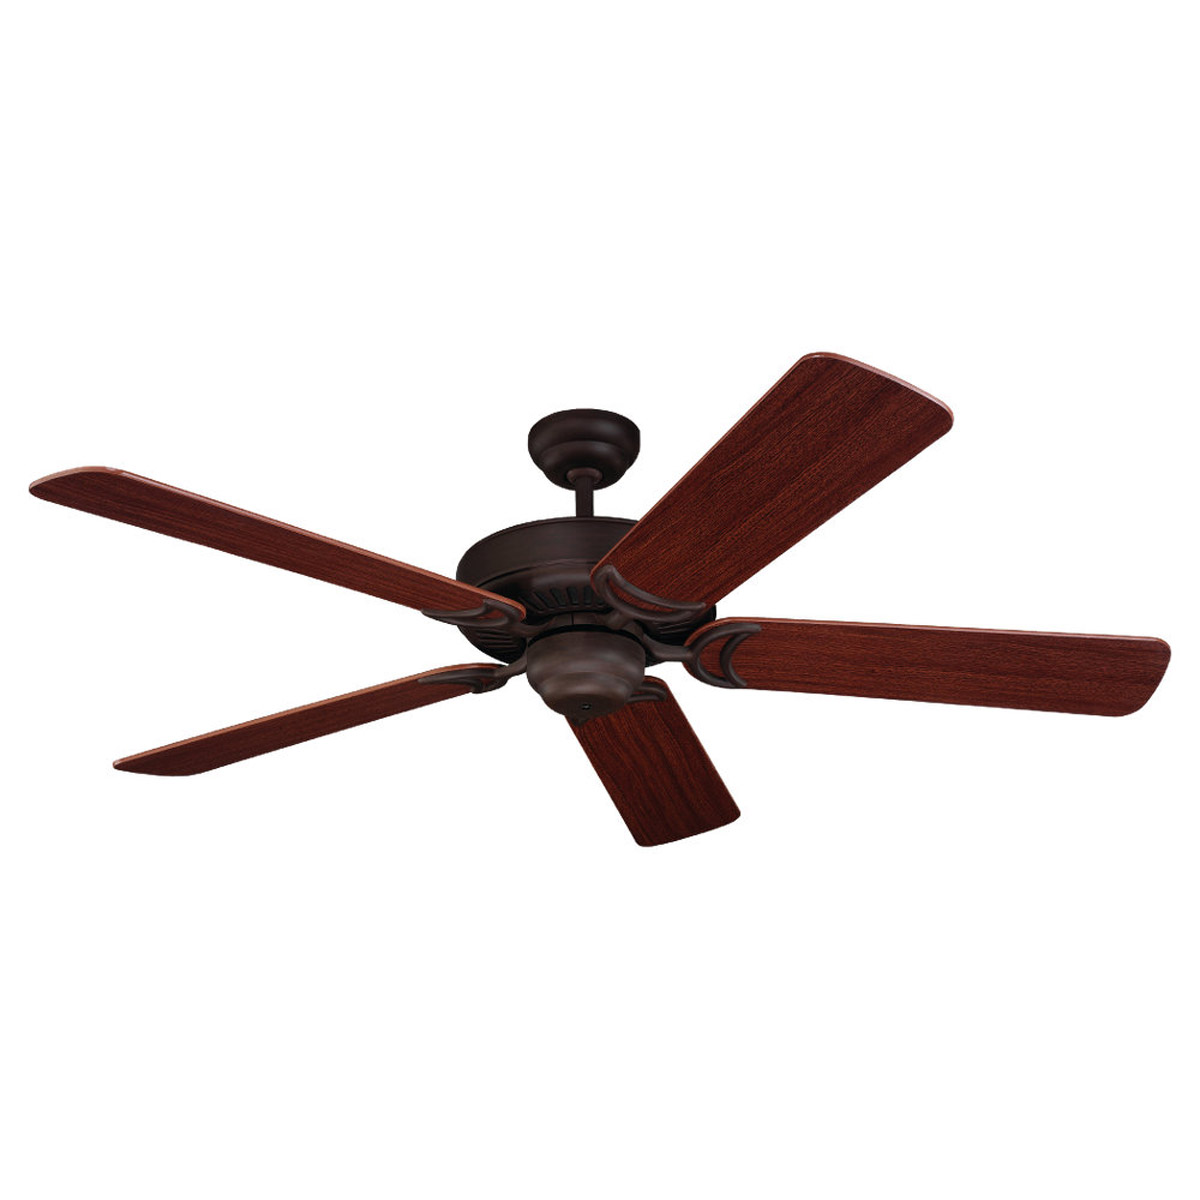 Sea Gull Lighting Celebrity Deluxe Indoor Ceiling Fan in Olde Iron 1535-72